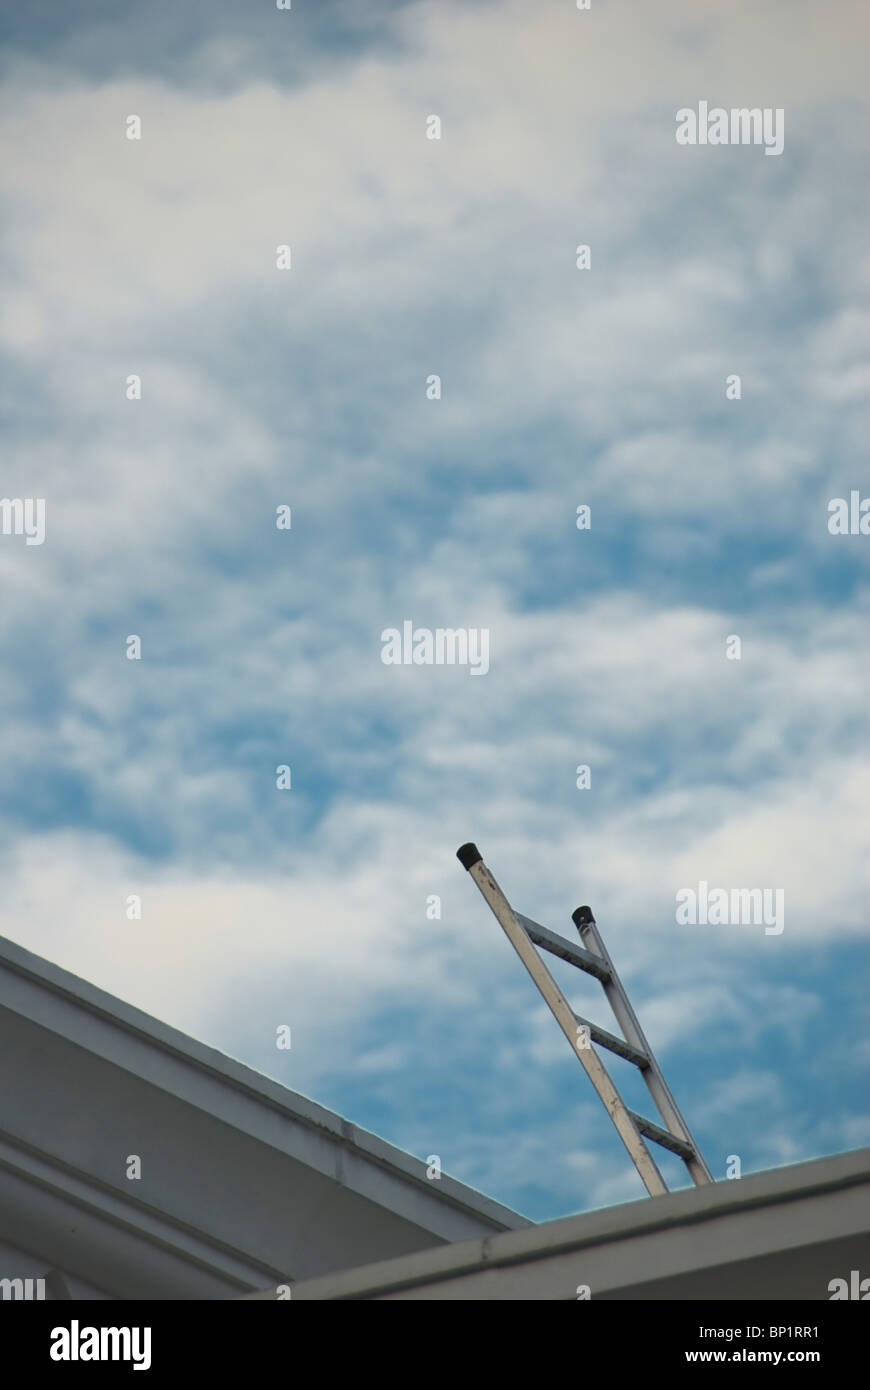 Kuala Lumpur, Malaysia; A Metal Ladder On A Roof Reaching To The Sky - Stock Image